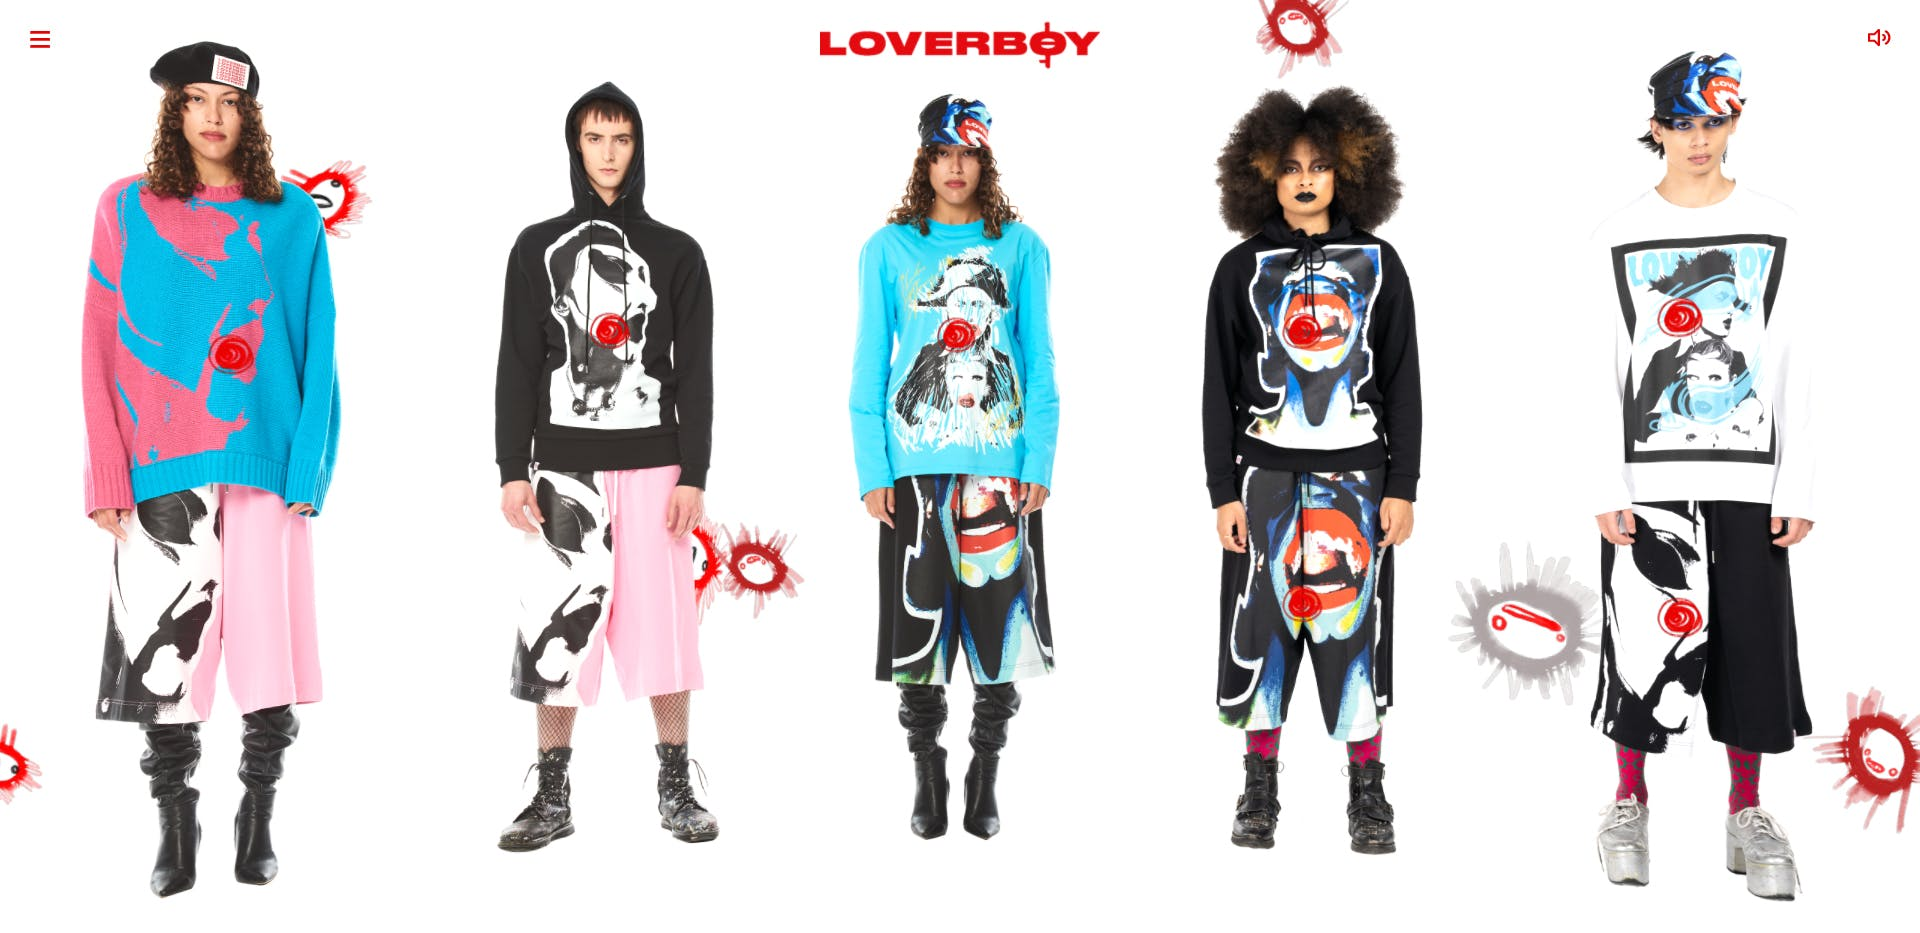 Charles Jeffrey Loverboy ecommerce